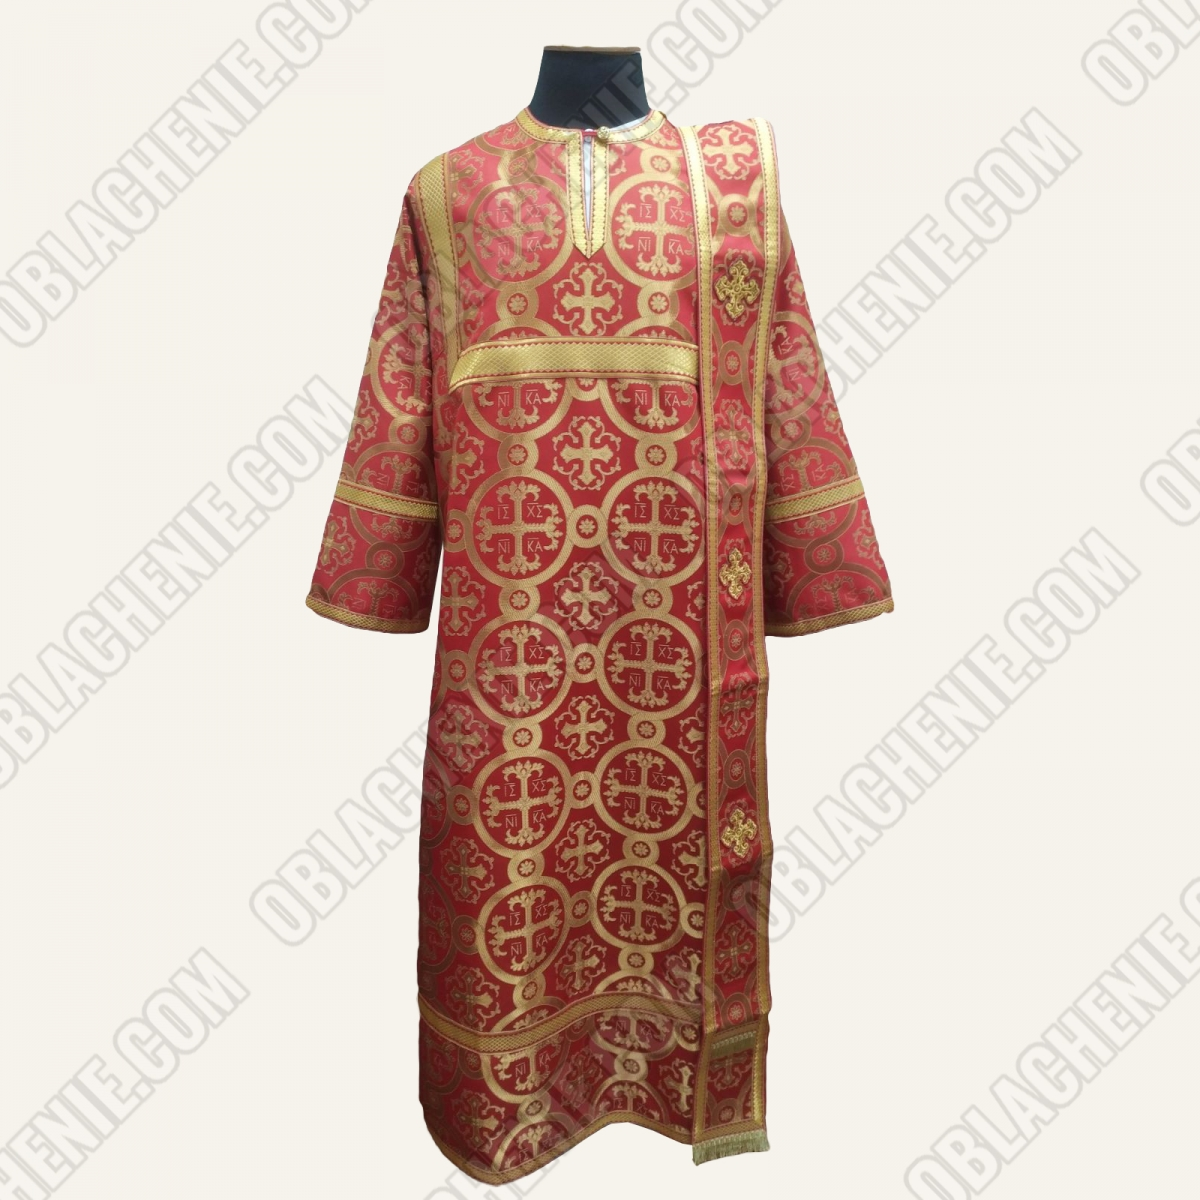 DEACON'S VESTMENTS 11208